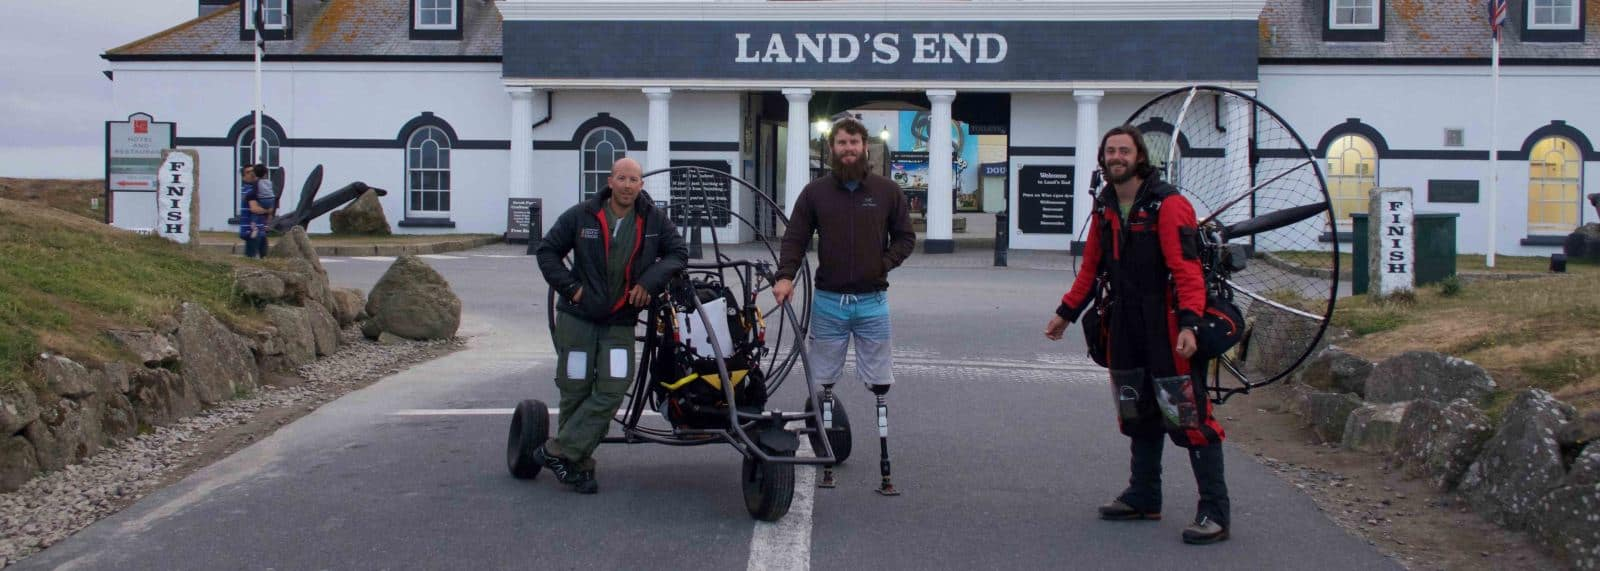 Alex Ledger Cayle Royce and james Borges at Lands End